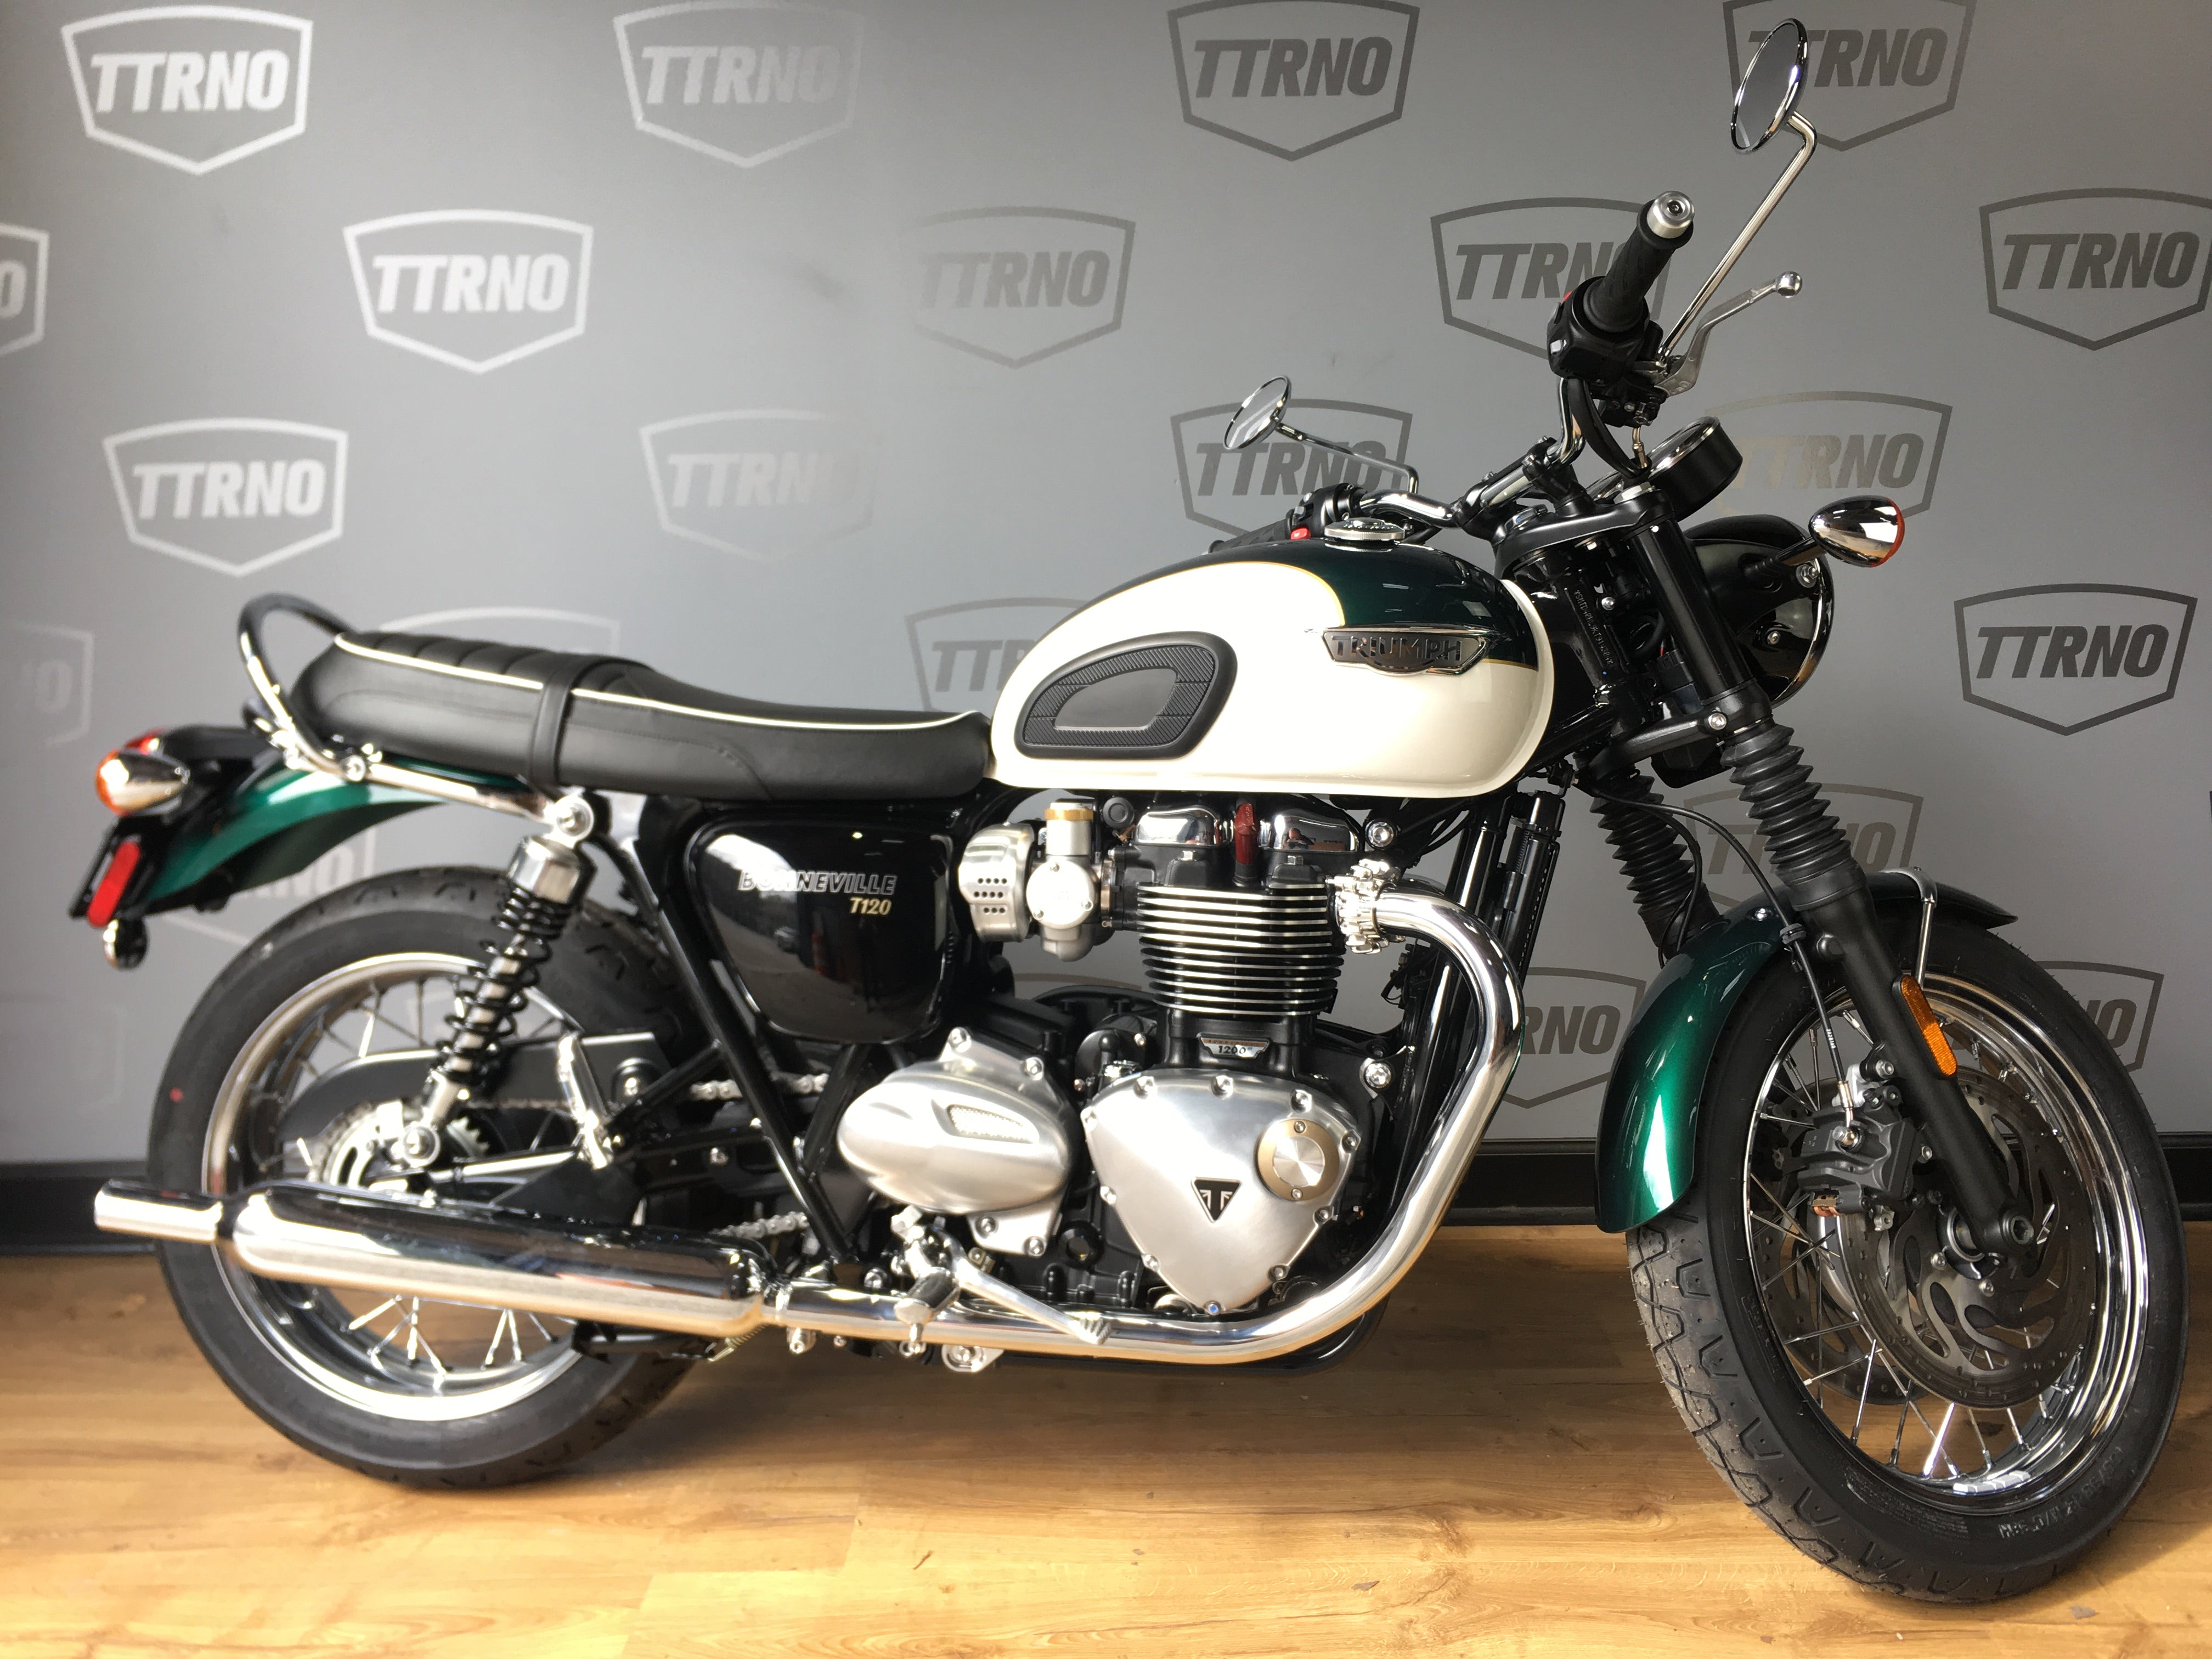 2019 Triumph Bonneville T120 Competition Greenfrozen Silver The